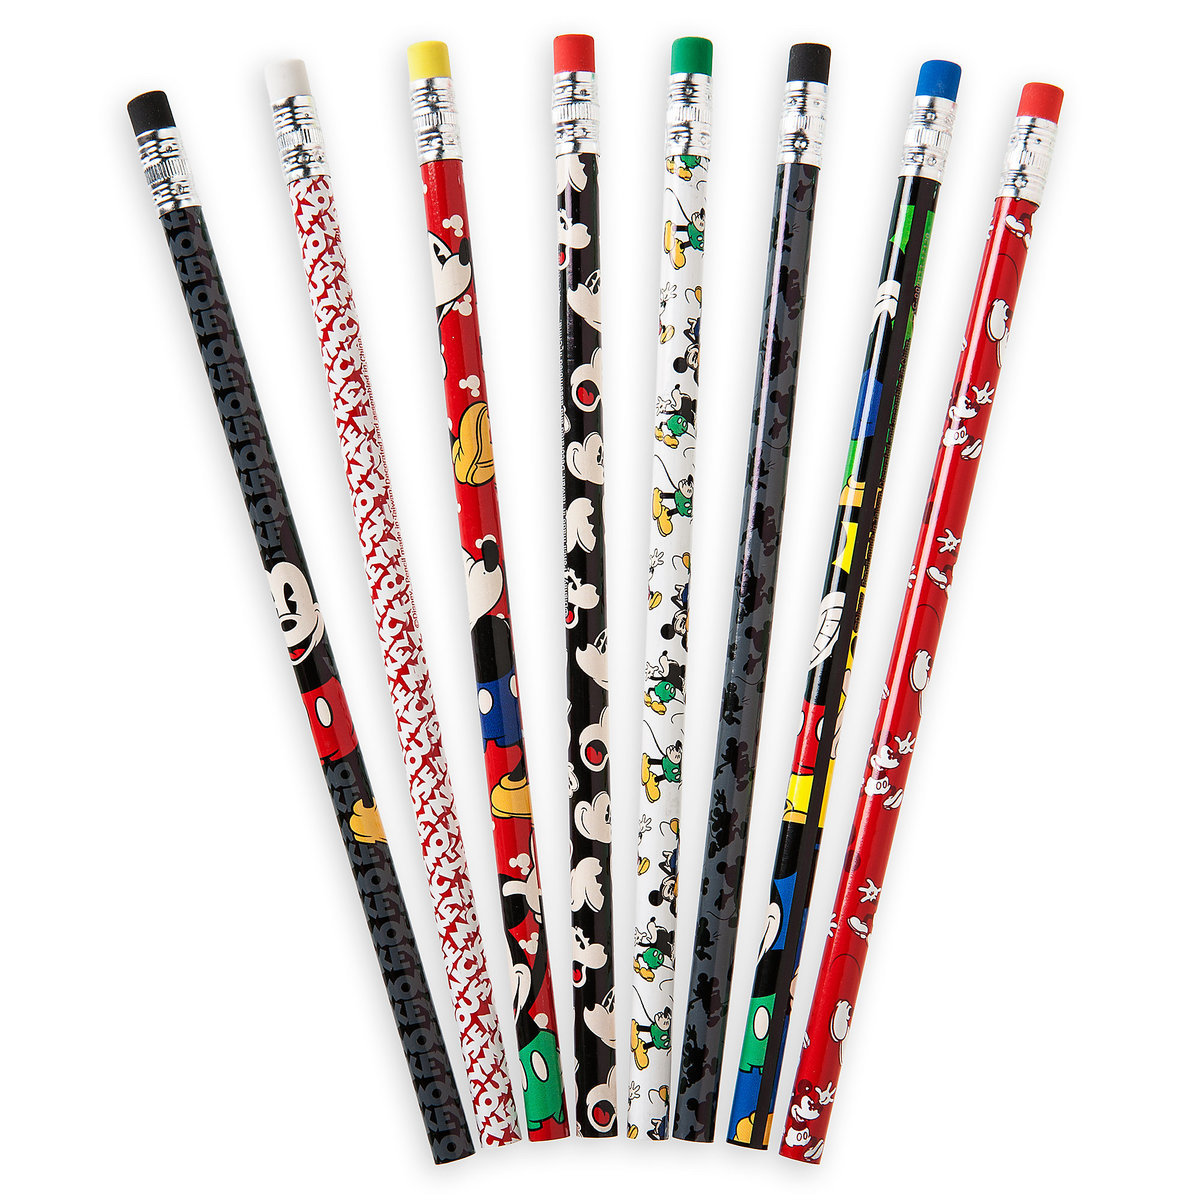 Disney Pencil Set - 8 Pack of Pencils - Timeless Mickey Mouse